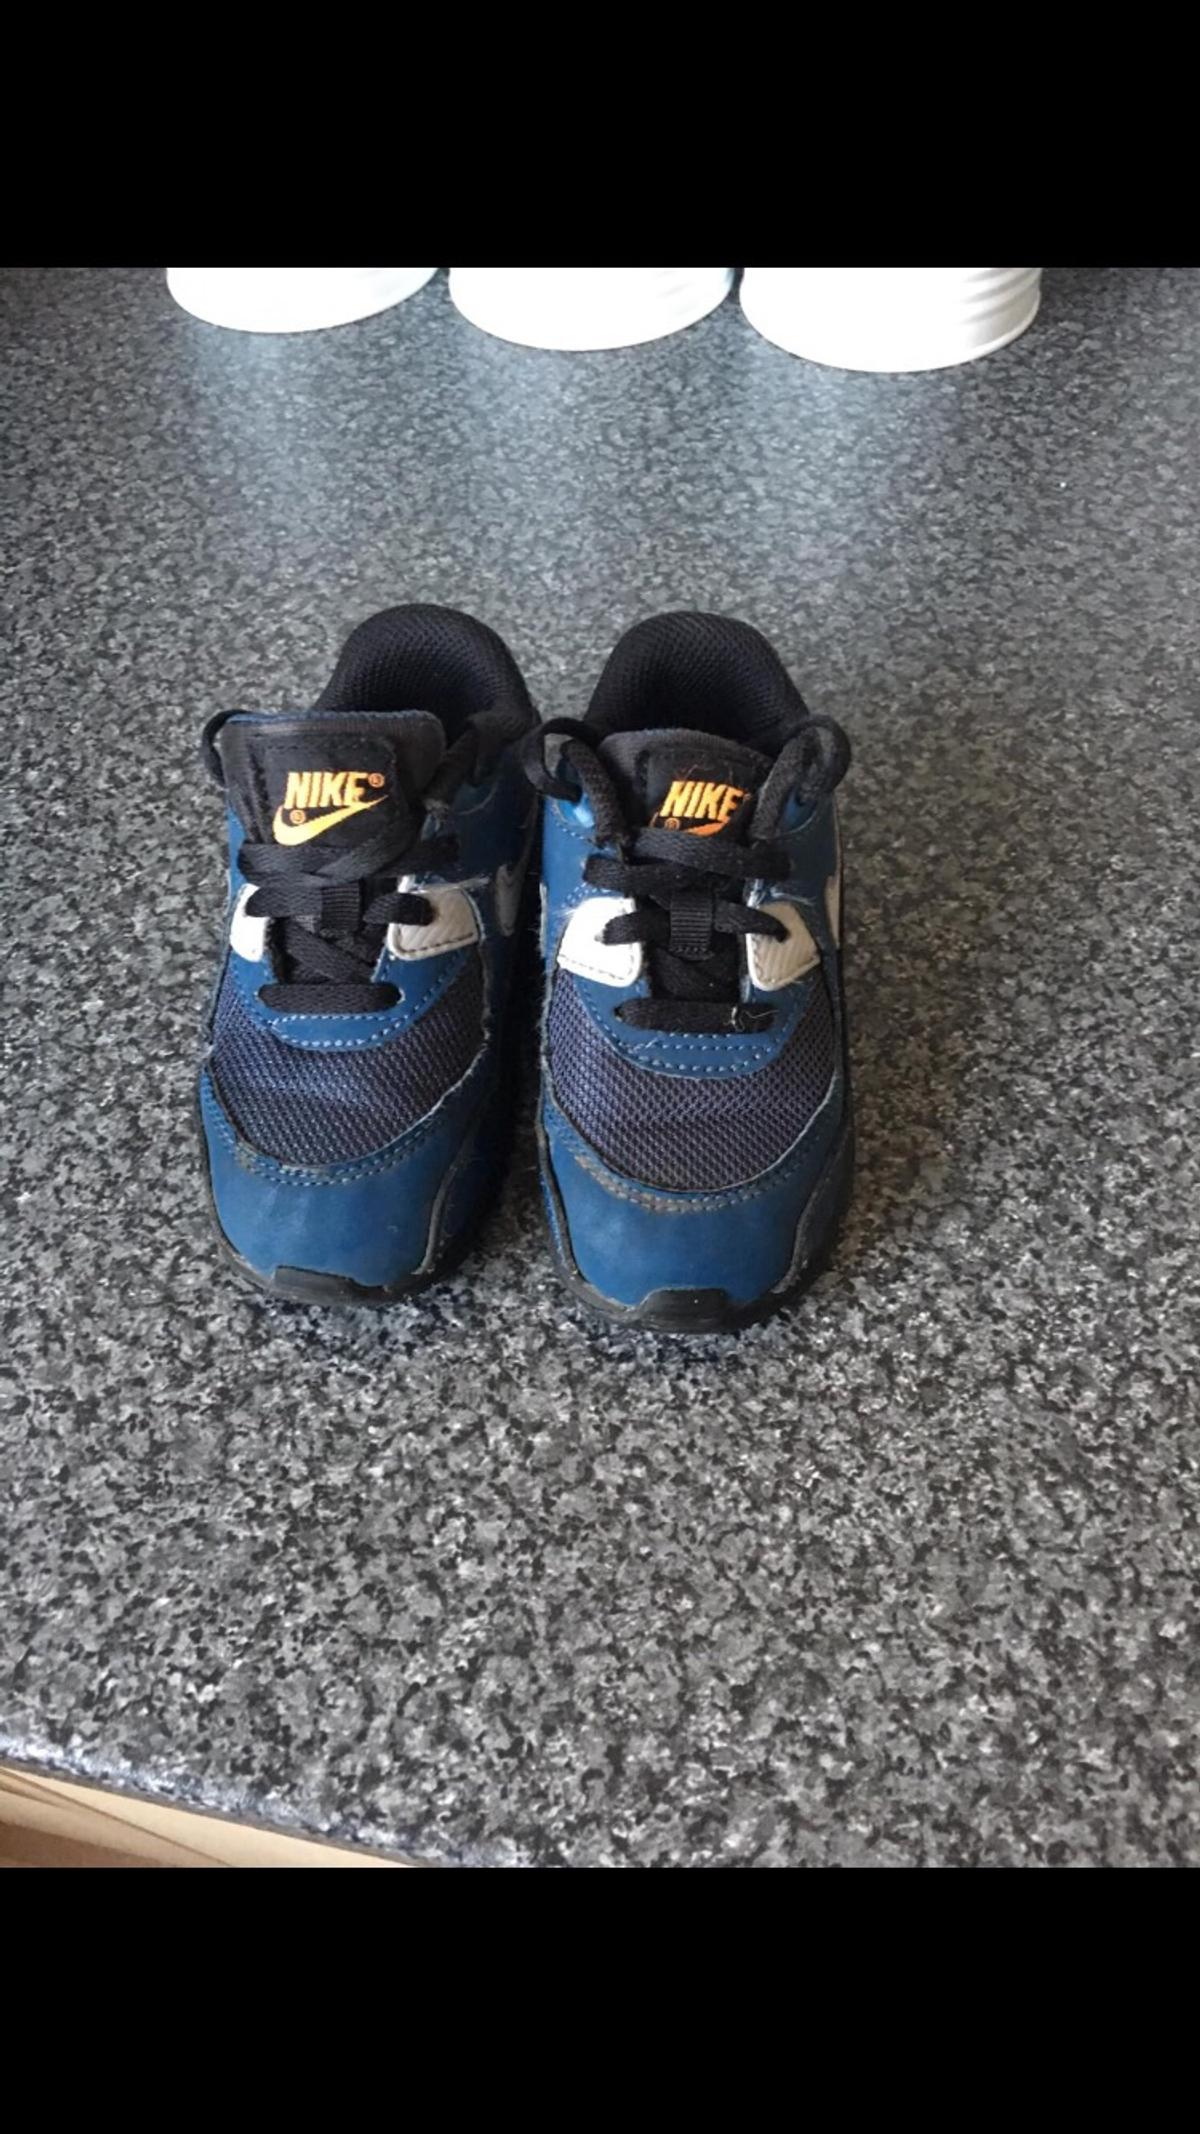 31c5fa7d786f Navy blue nike trainers 6.5 infant. in WD25 Watford for £10.00 for ...